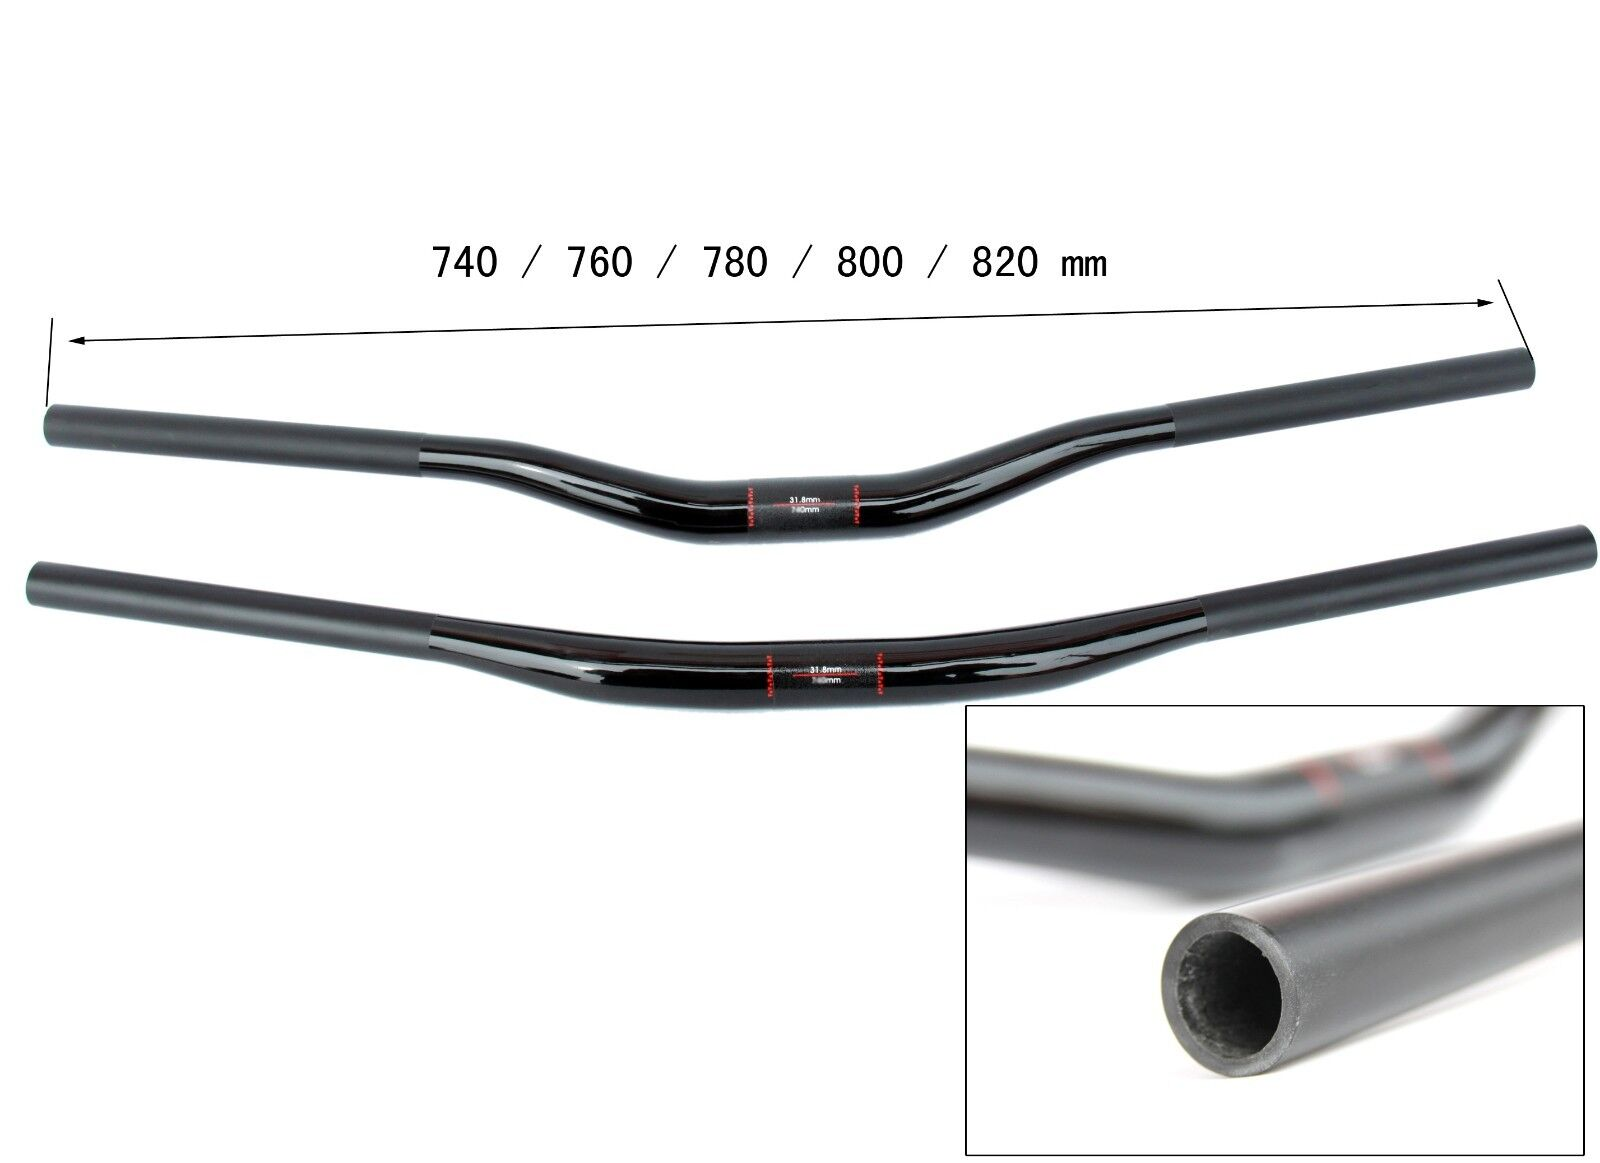 DH AM  UD CARBON 31.8 MTB handlebar riser 15   30mm x 740mm 760 780 800mm 820mm  discounts and more